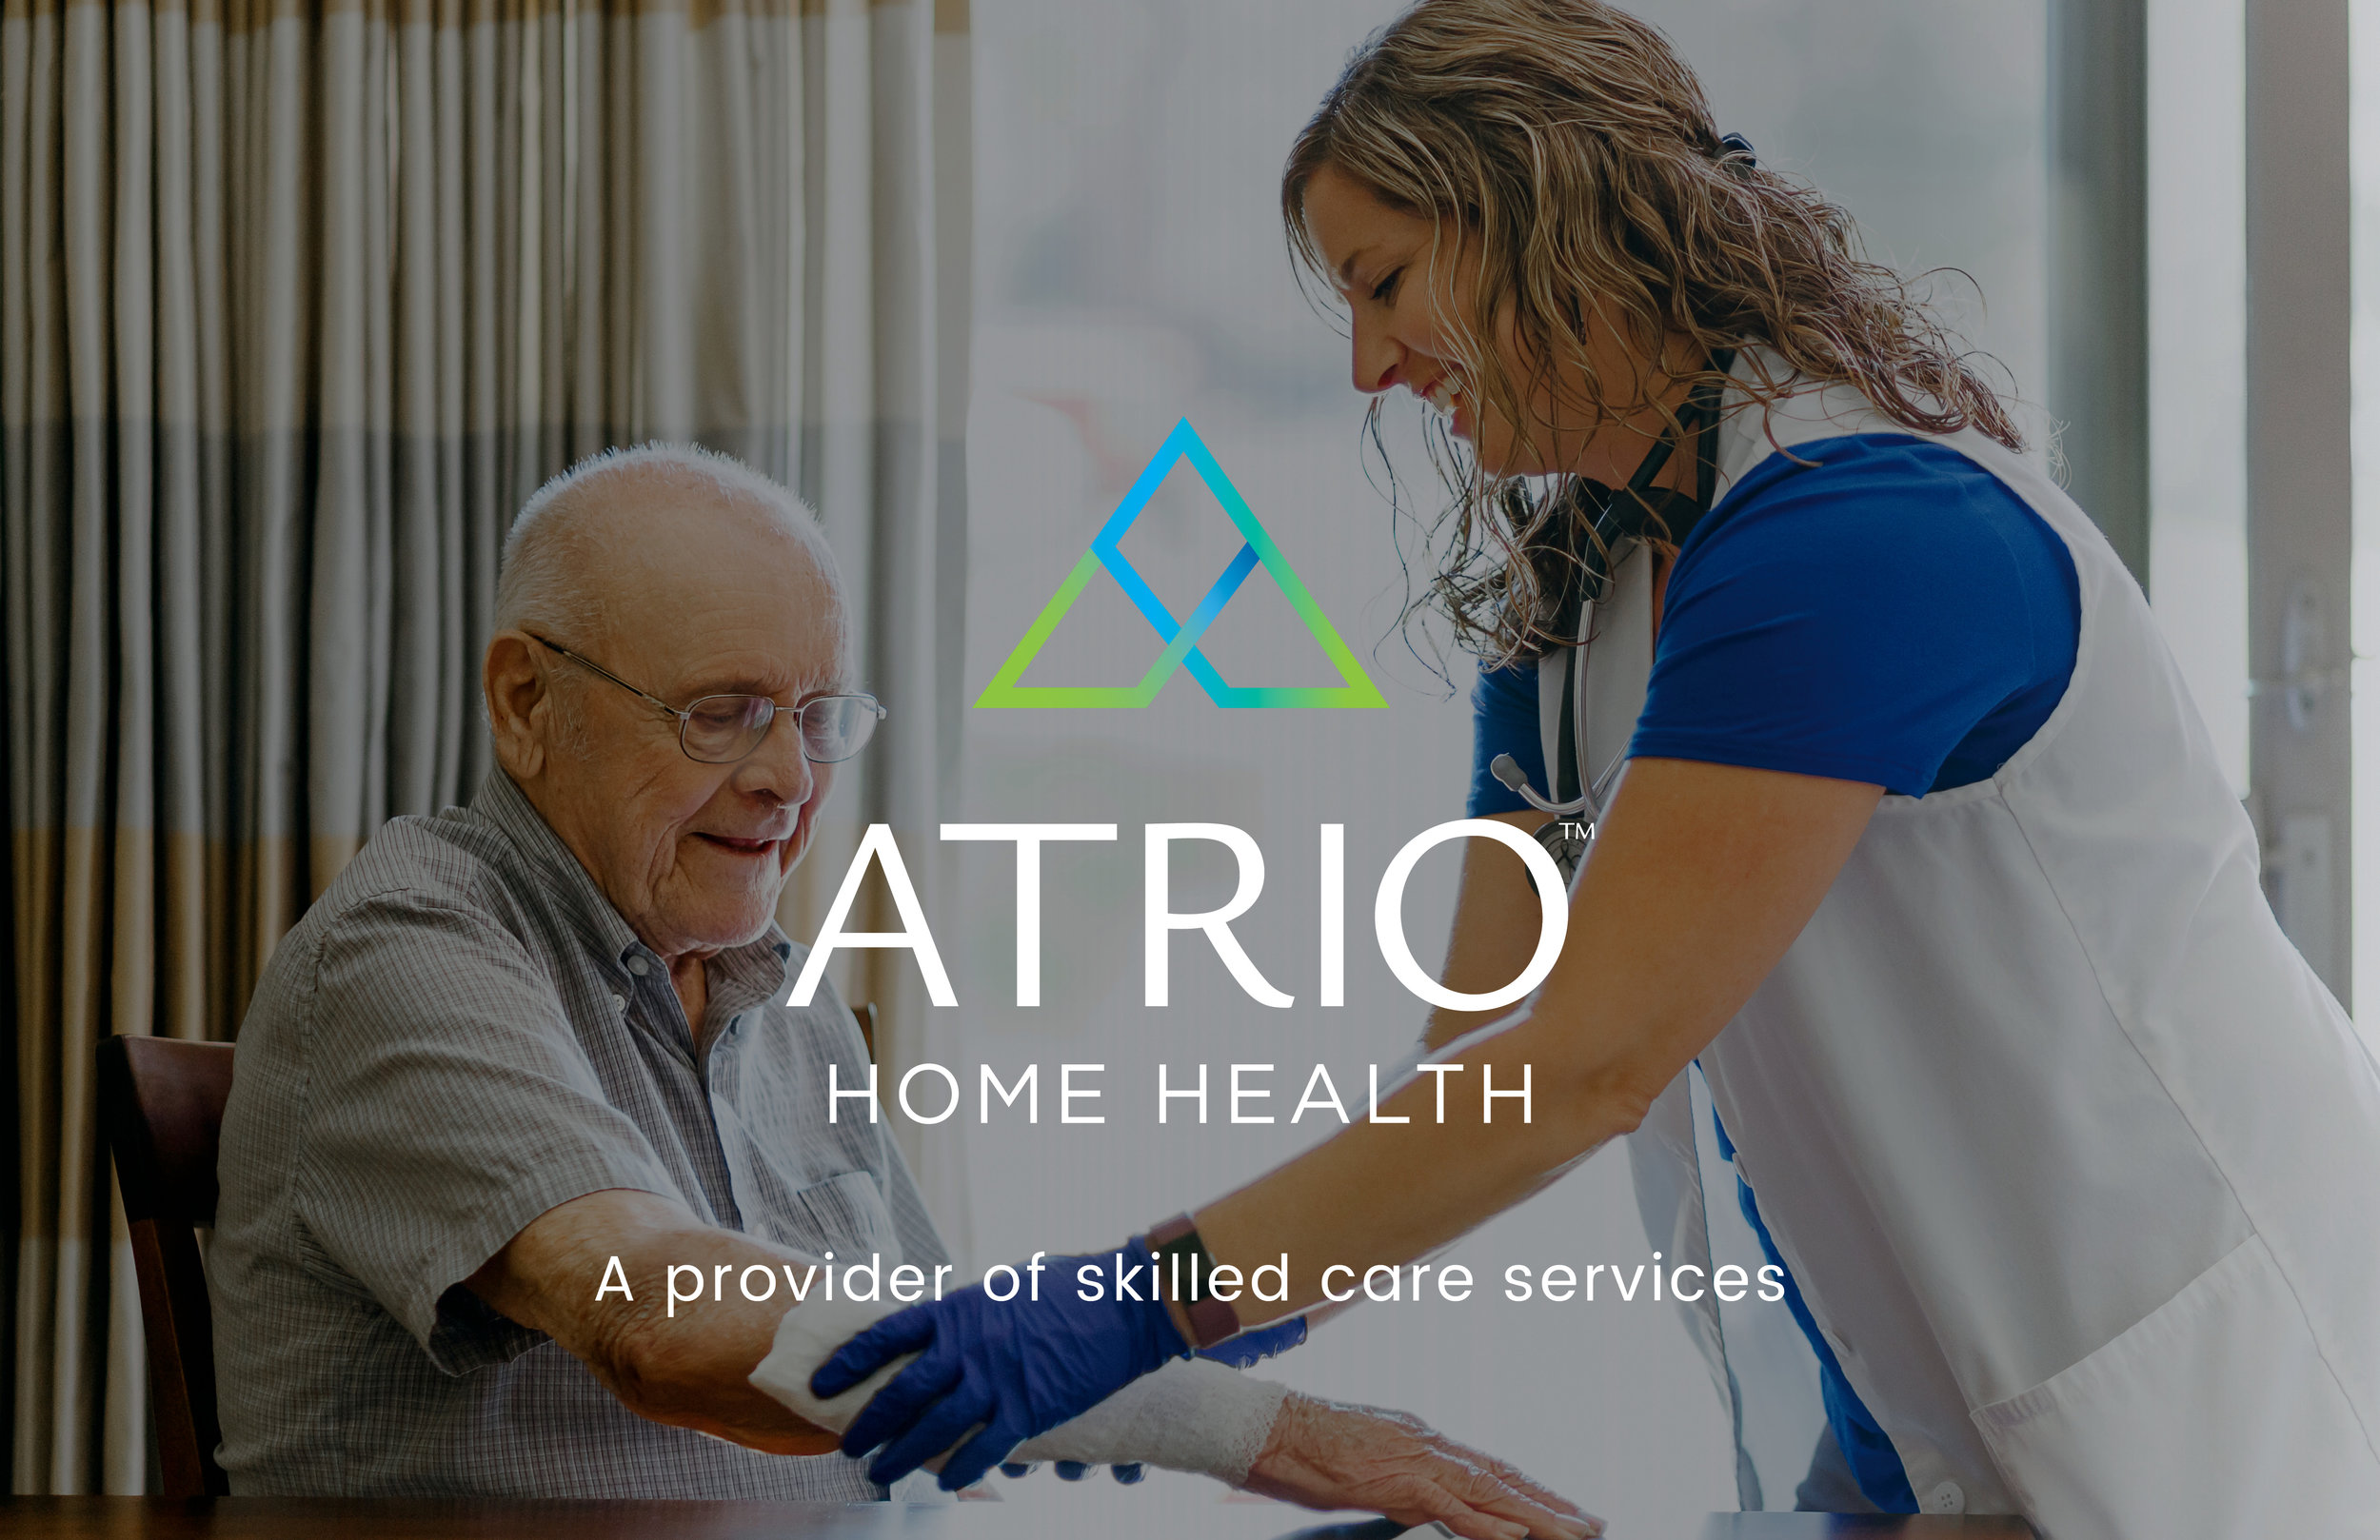 Atrio Home Health   Atrio Home Health services are certified home health services most commonly needed following a surgery or to manage an ongoing illness or condition.  These services require a physician's order and are typically covered by Medicare or private insurance. If you are a licensed referrer, you may begin the process for referring your patients to Atrio Home Health by calling or faxing our Grand Rapids or Lakeshore location.